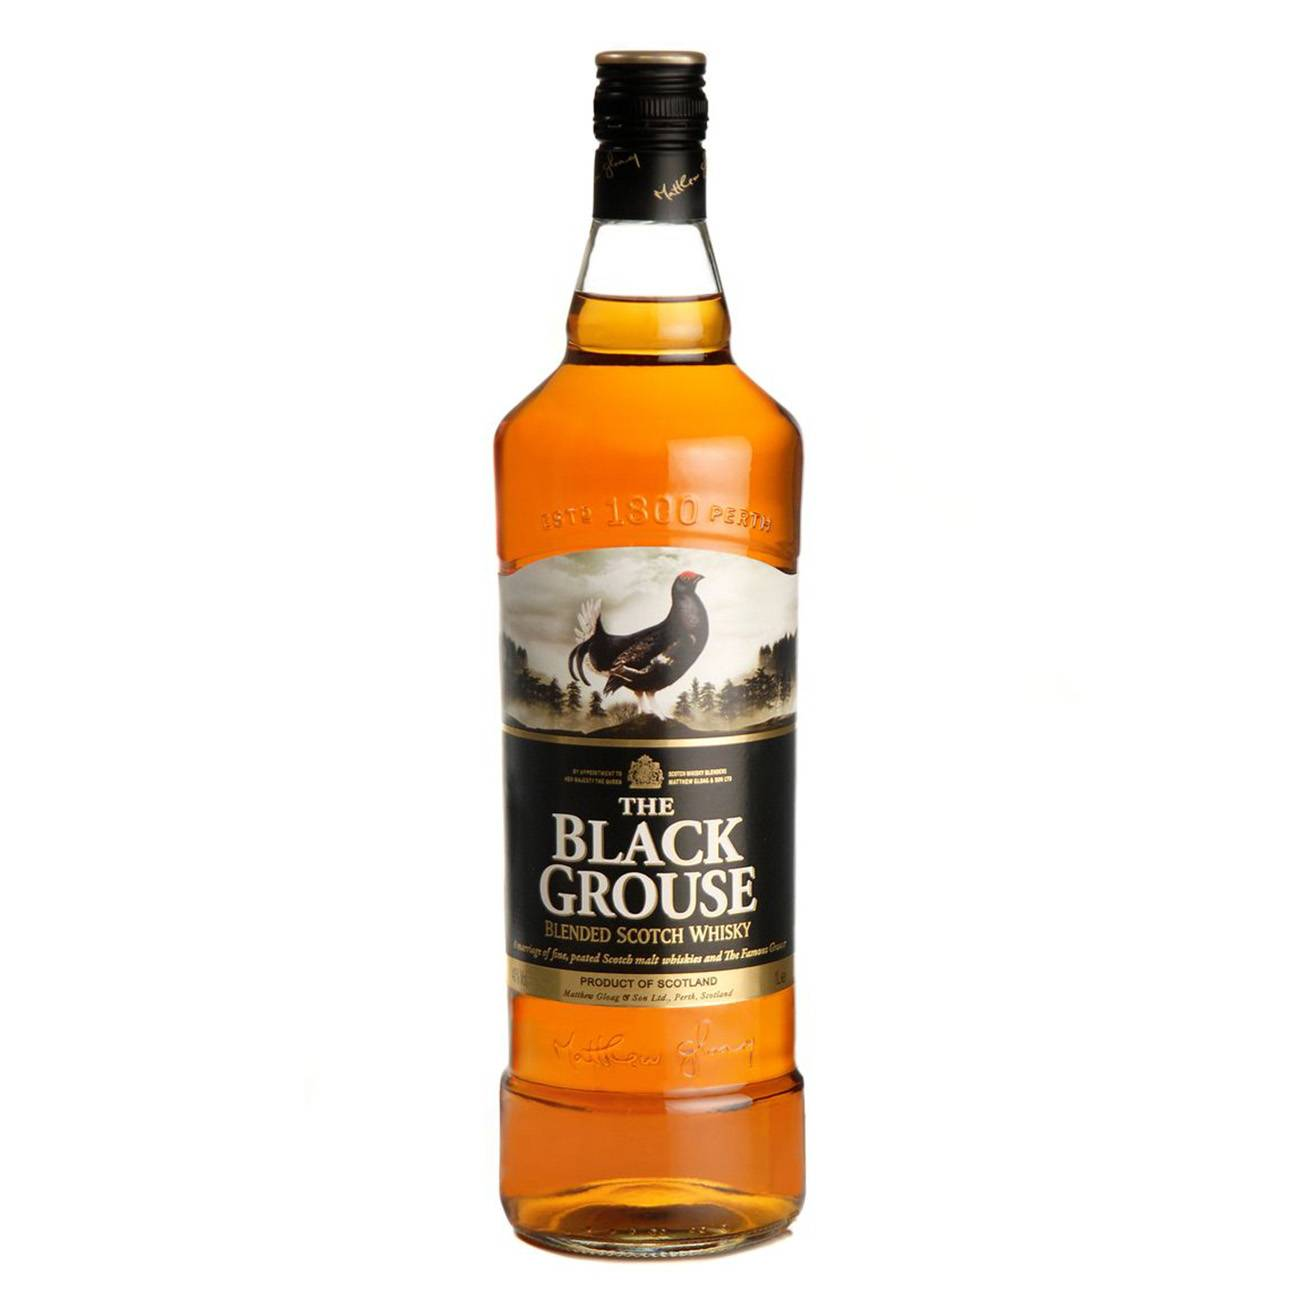 The Black Grouse 1000 Ml de la The Famous Grouse